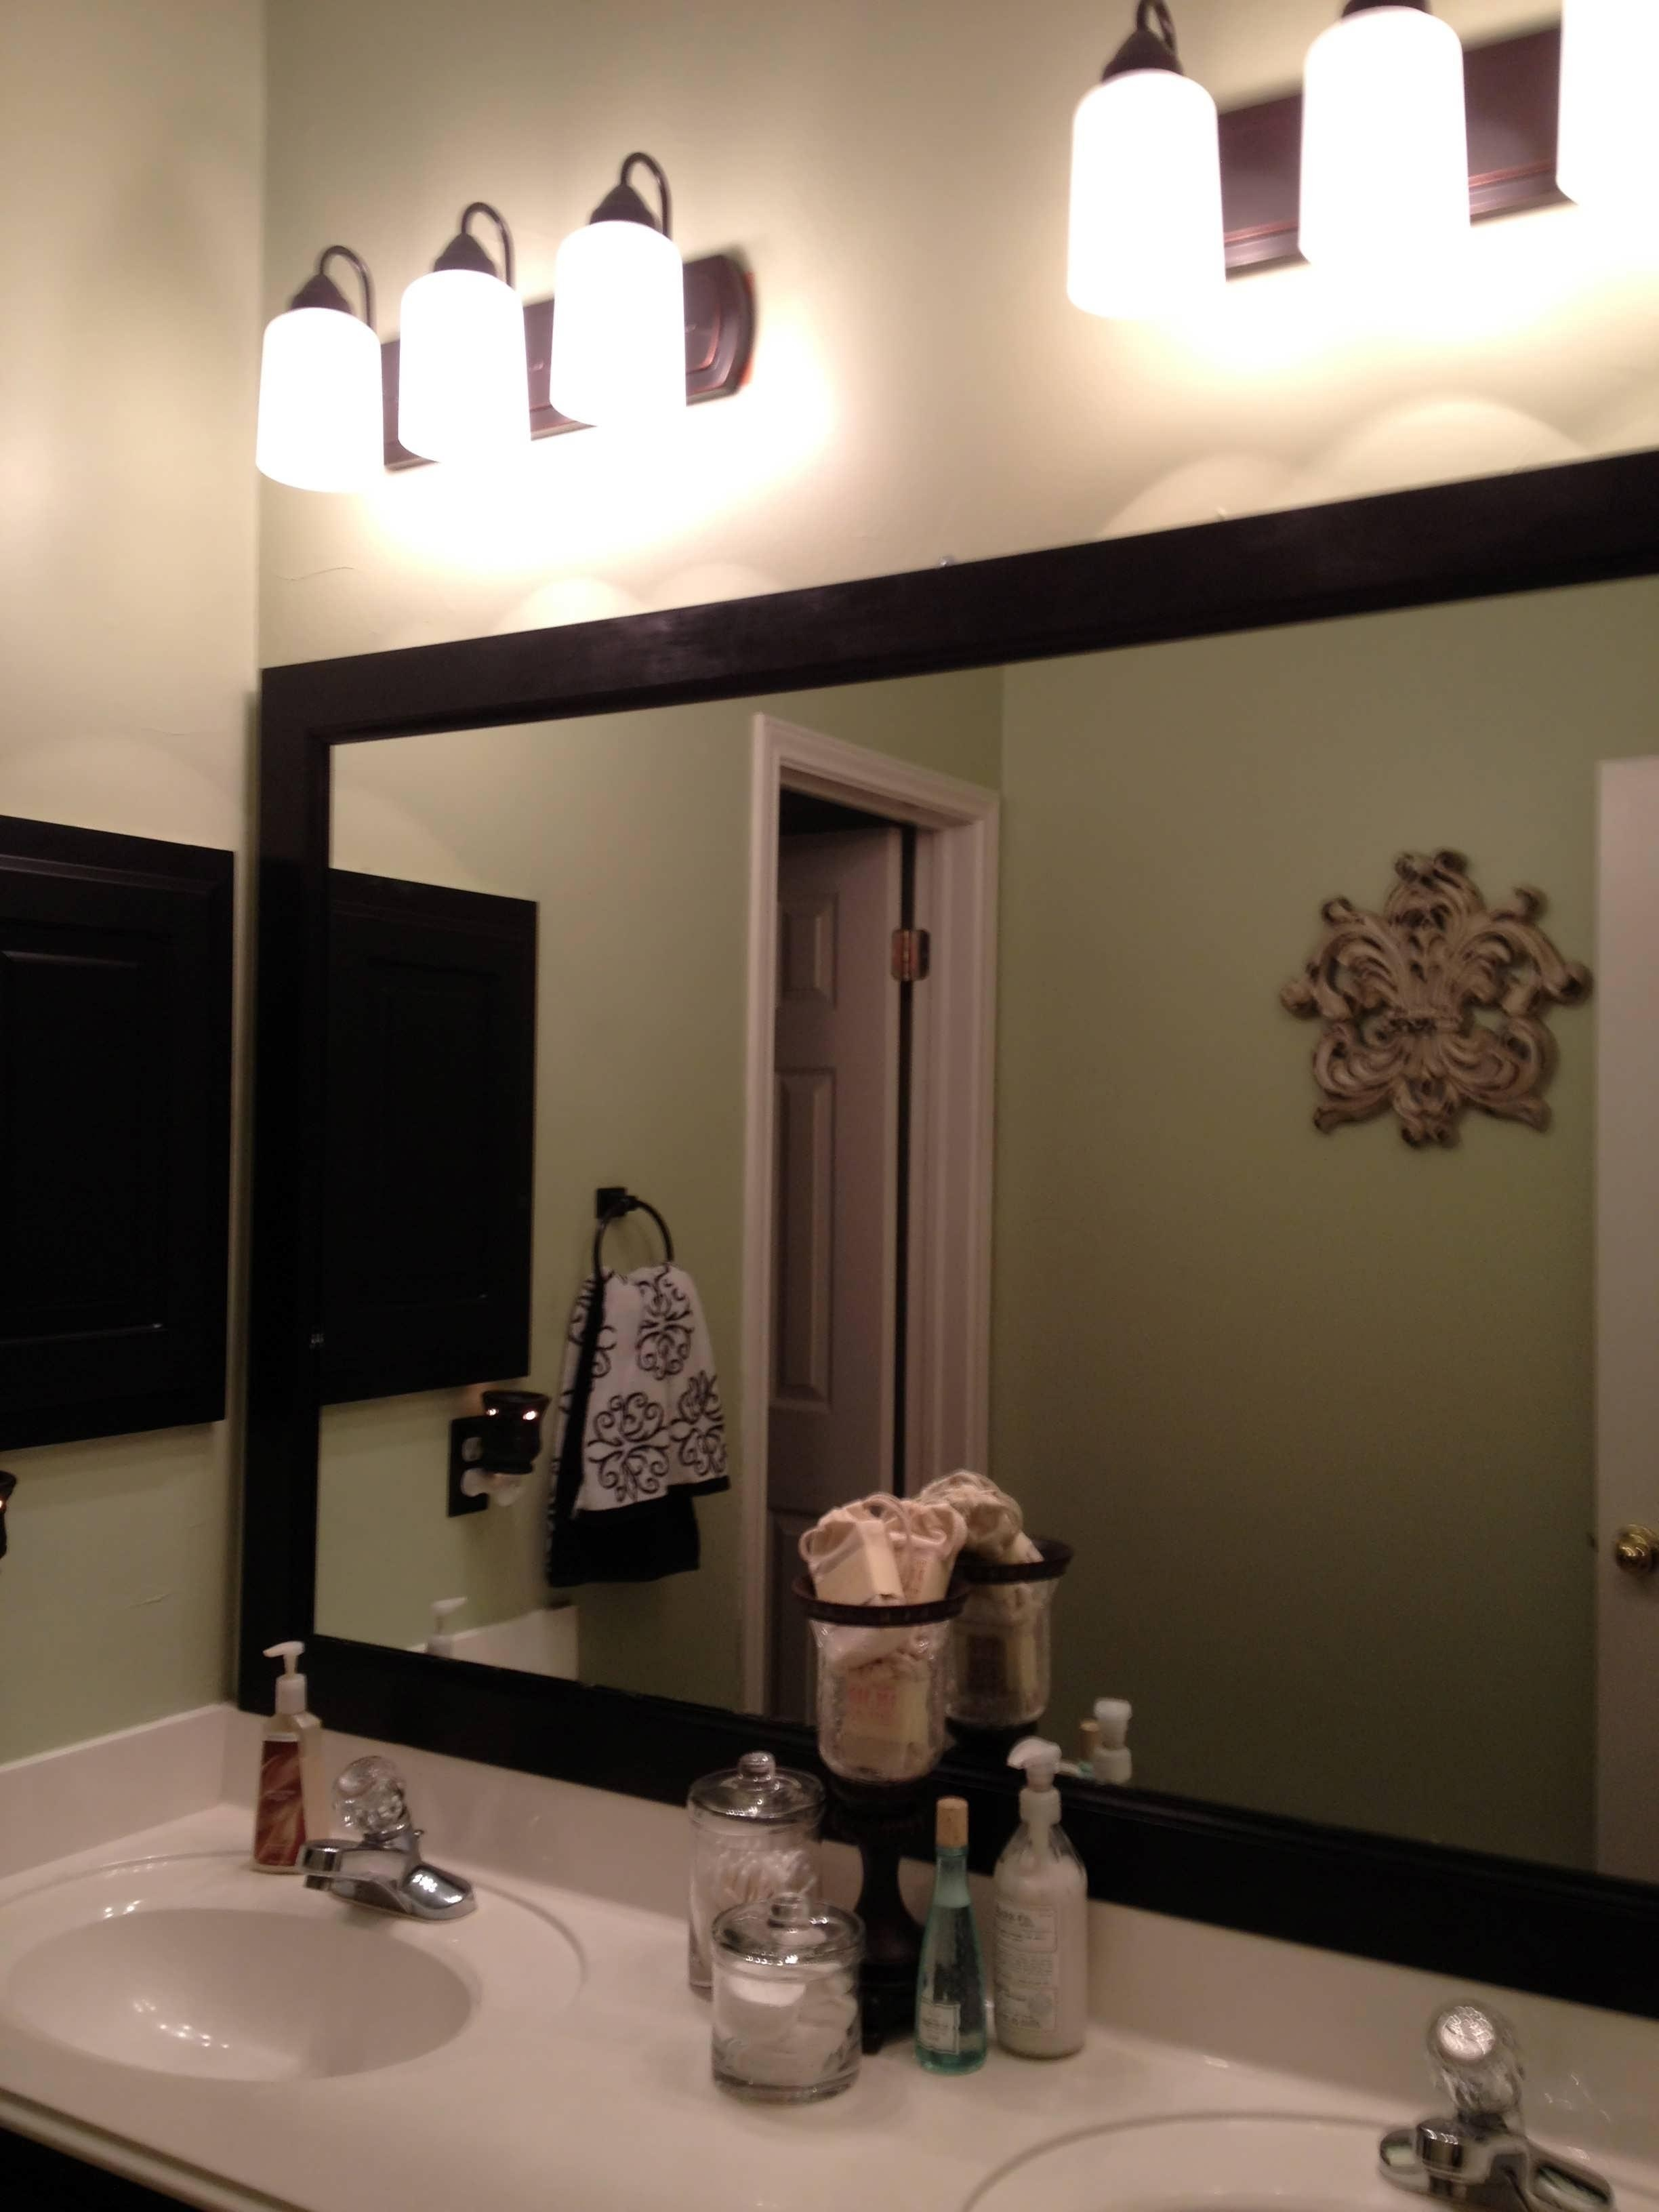 Bathroom : Mirrors Oval Framed Large White Bathroom Mirror Antique Pertaining To Antique White Oval Mirror (Image 7 of 20)